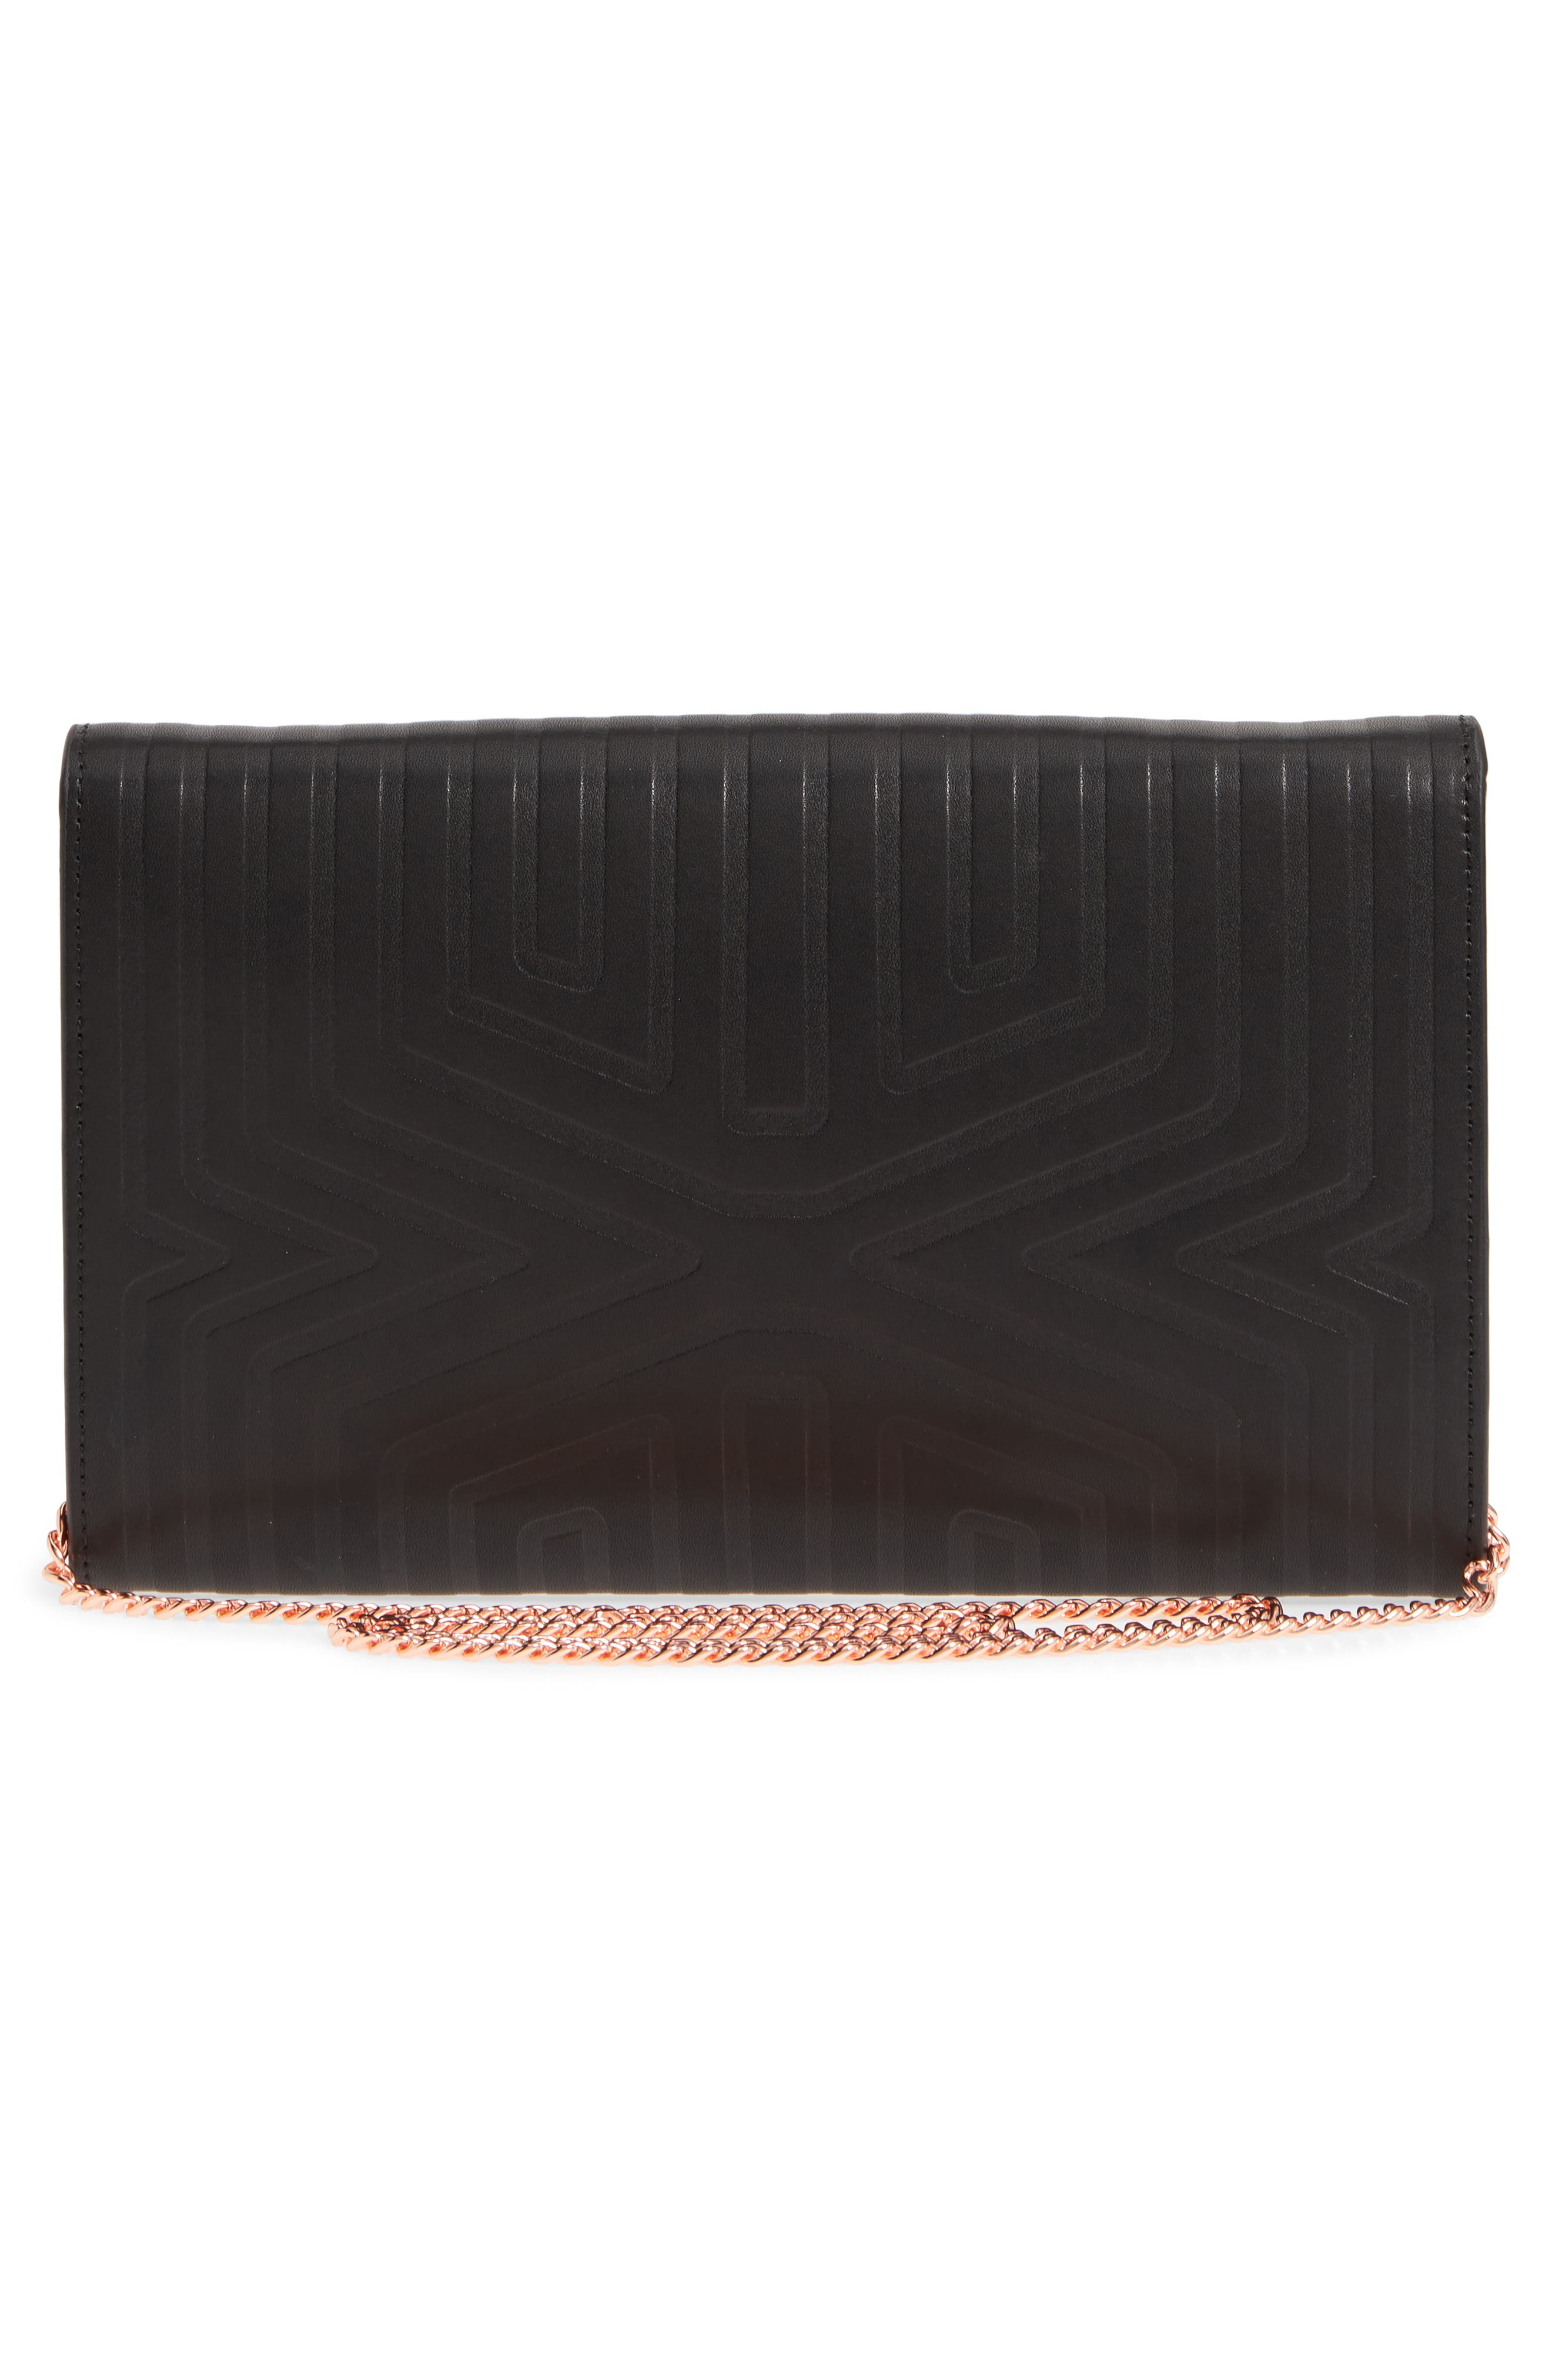 Jenaa Embossed Bow Leather Clutch,                             Alternate thumbnail 3, color,